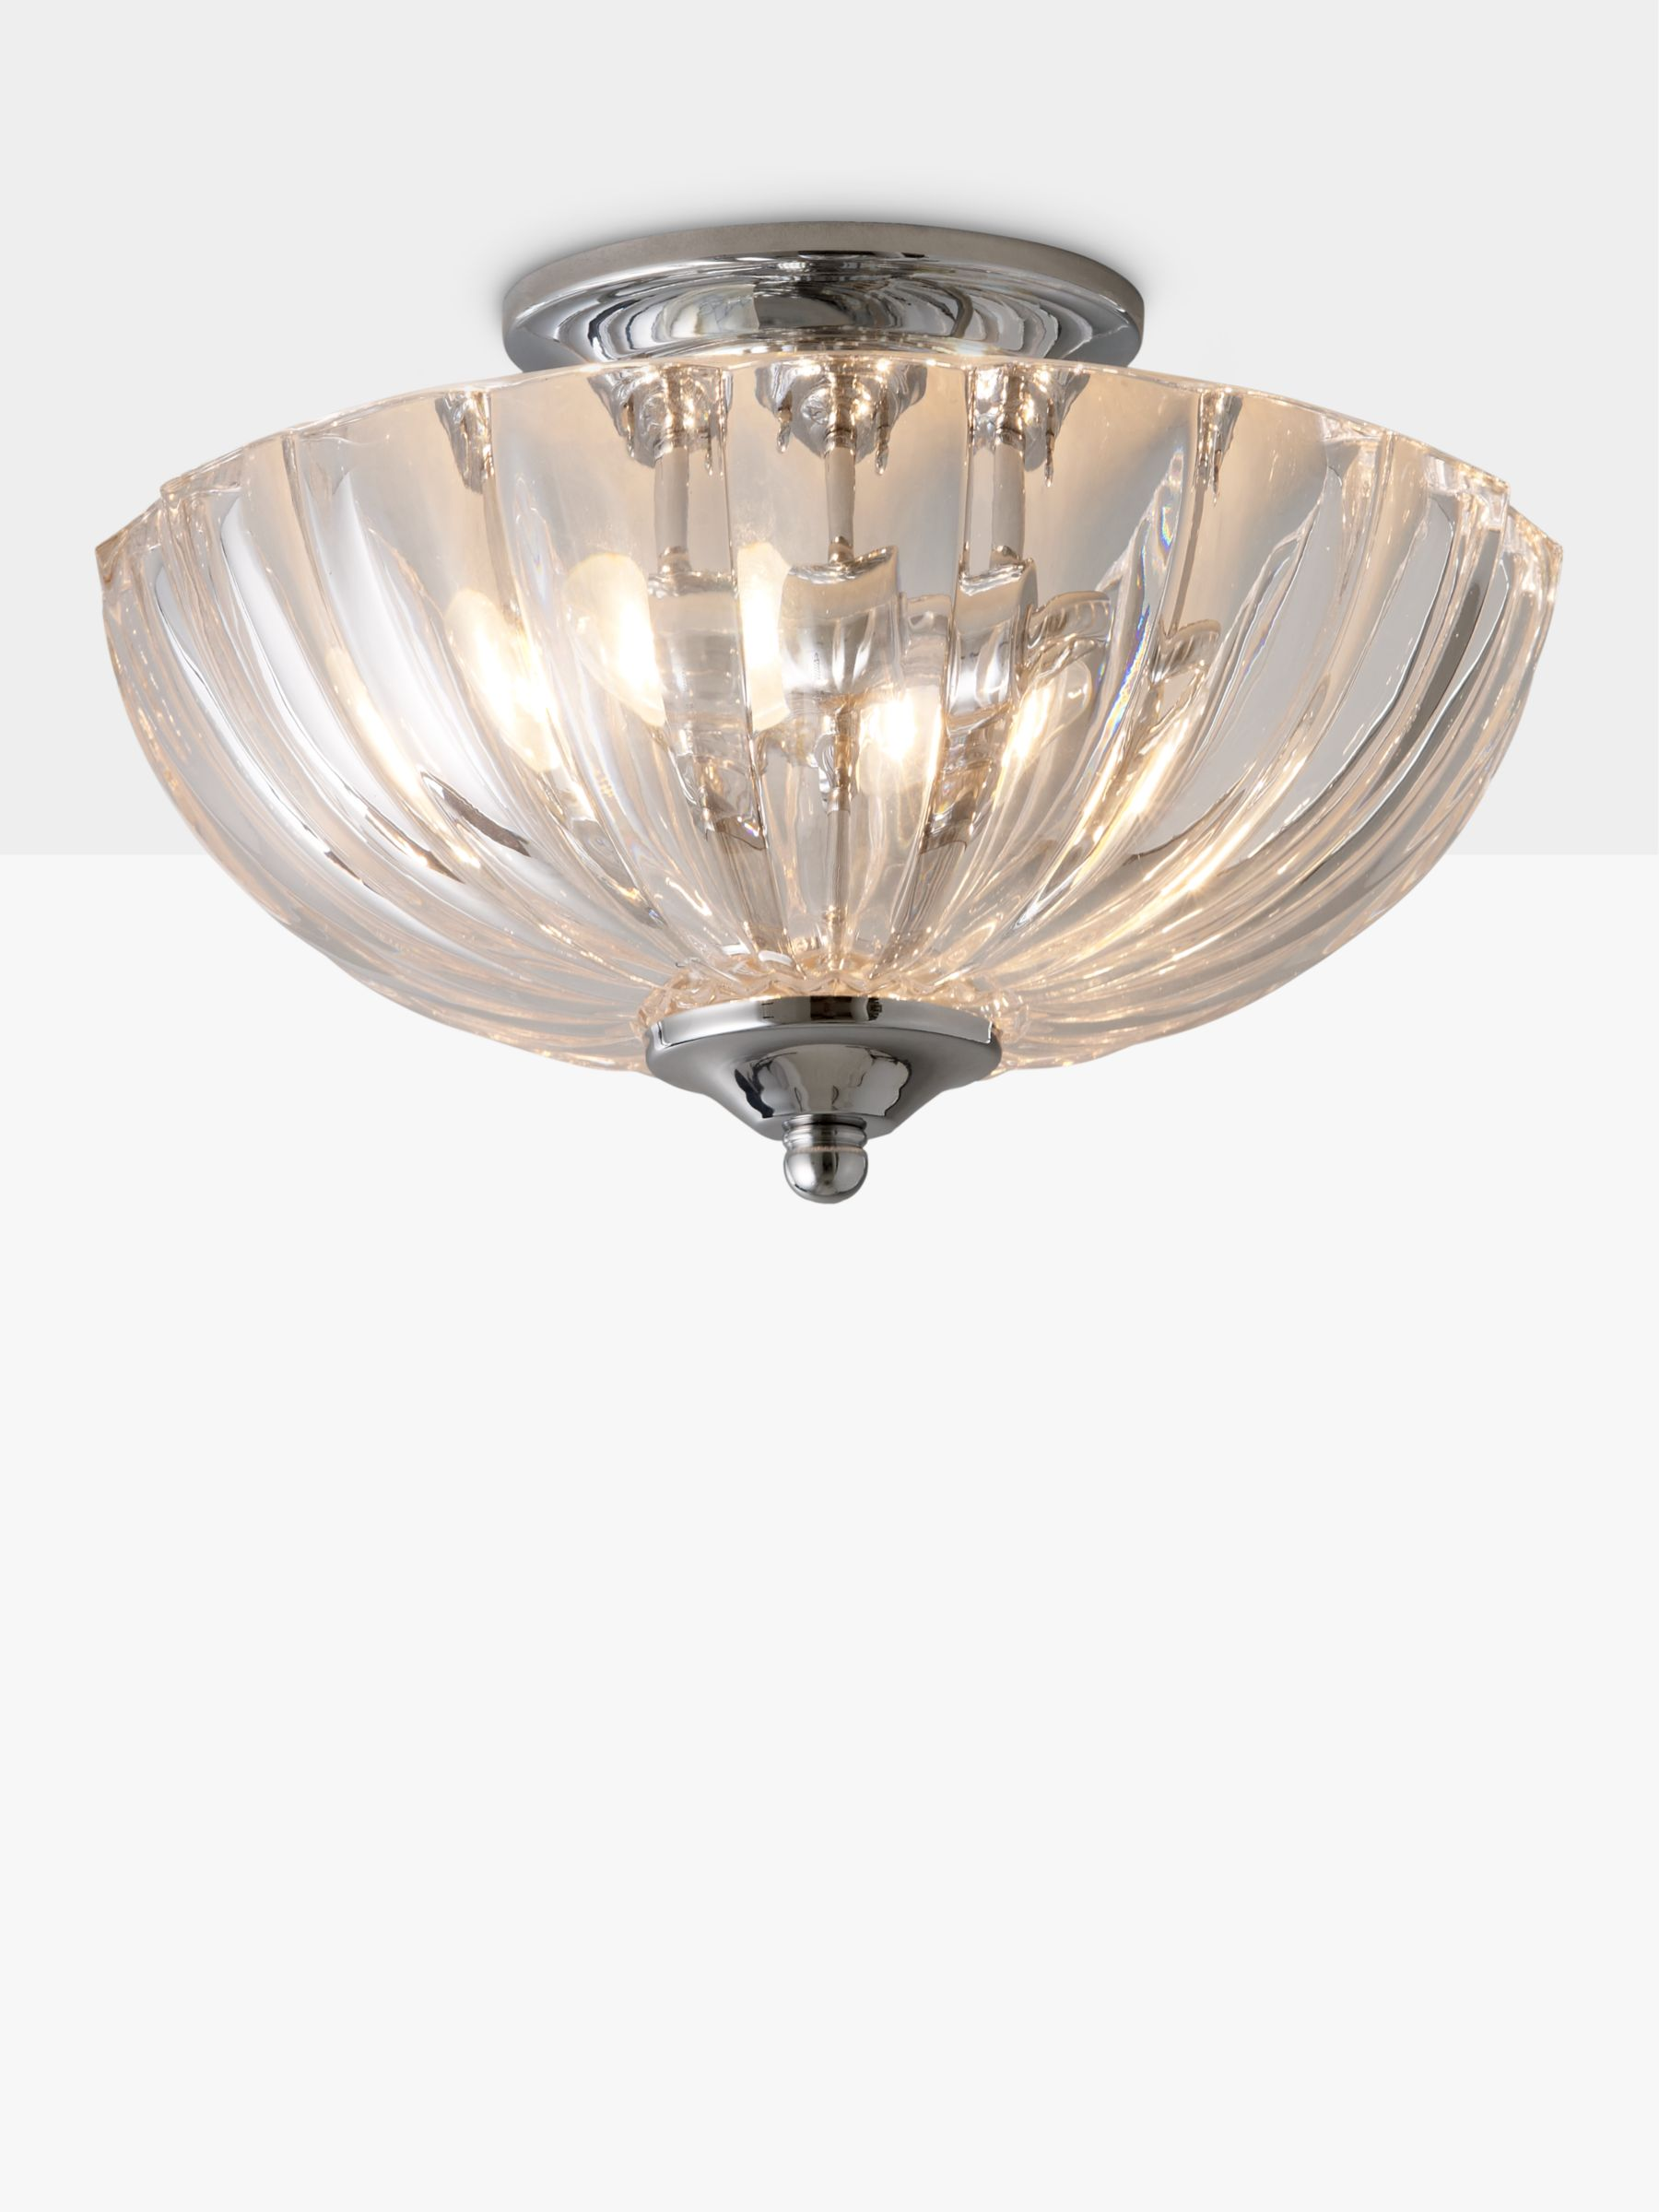 John Lewis Ceiling Lights Antique Brass : Buy cheap uplighter shade compare lighting prices for